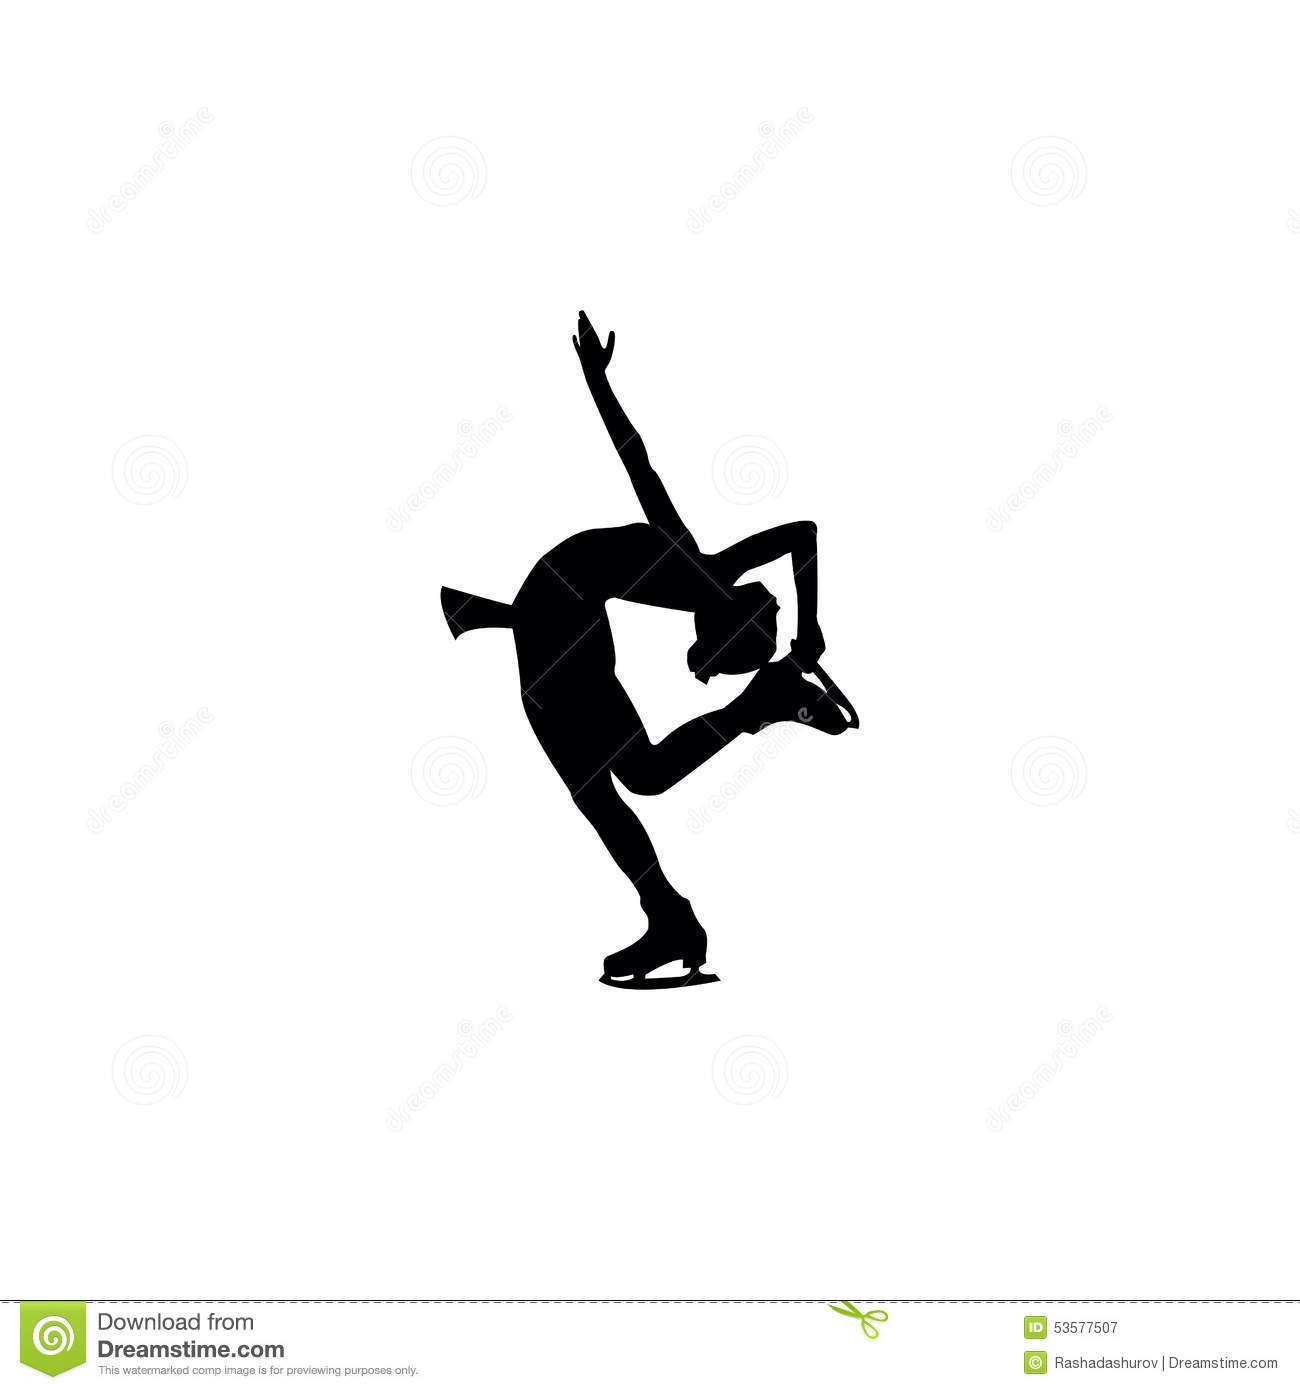 Figure skating individual, silhouettes, black on the white background.